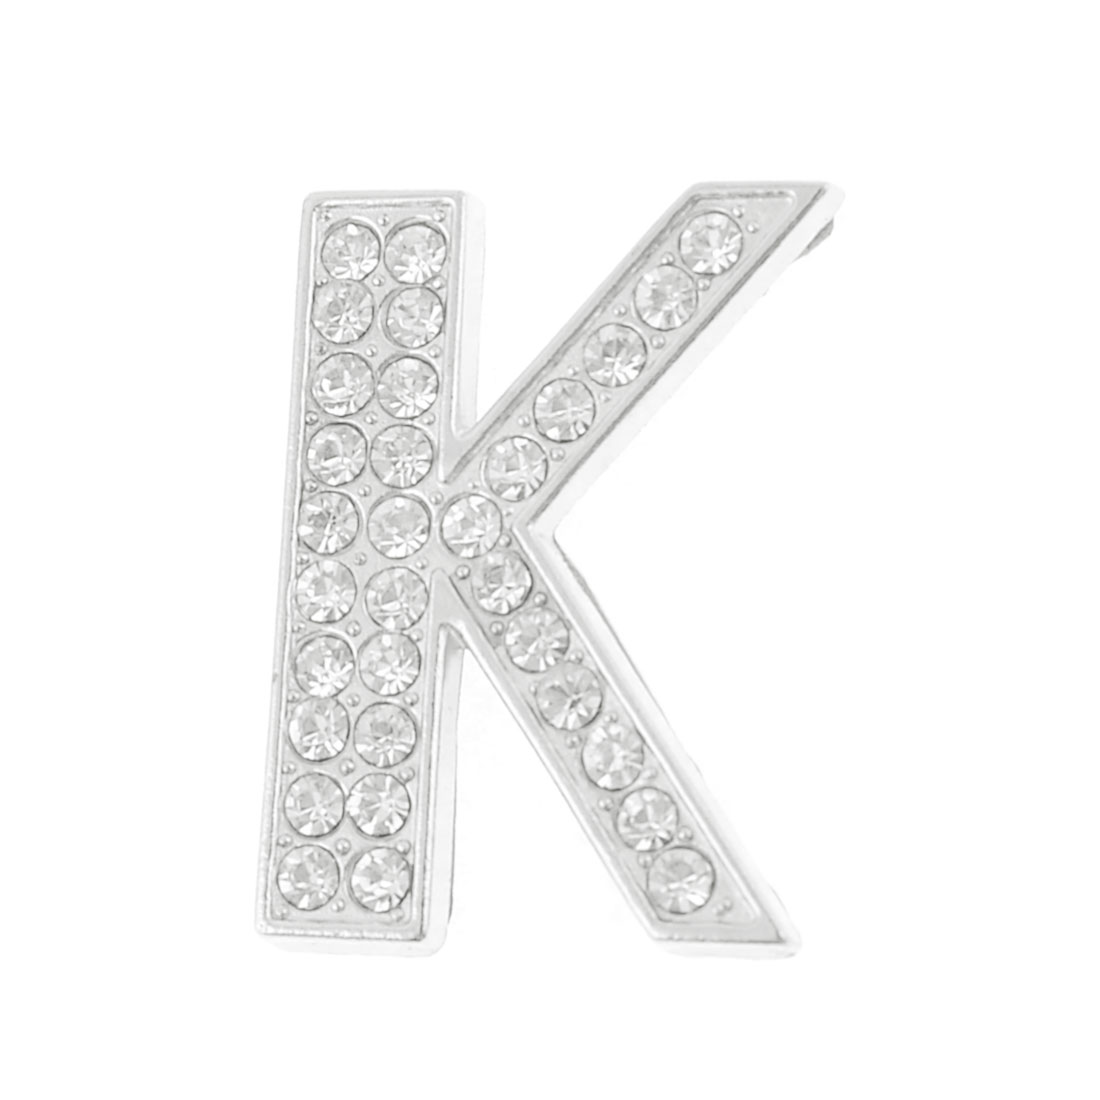 Auto Self Adhesive Silver Tone Metal Rhinestone Letter K Shaped Stickers